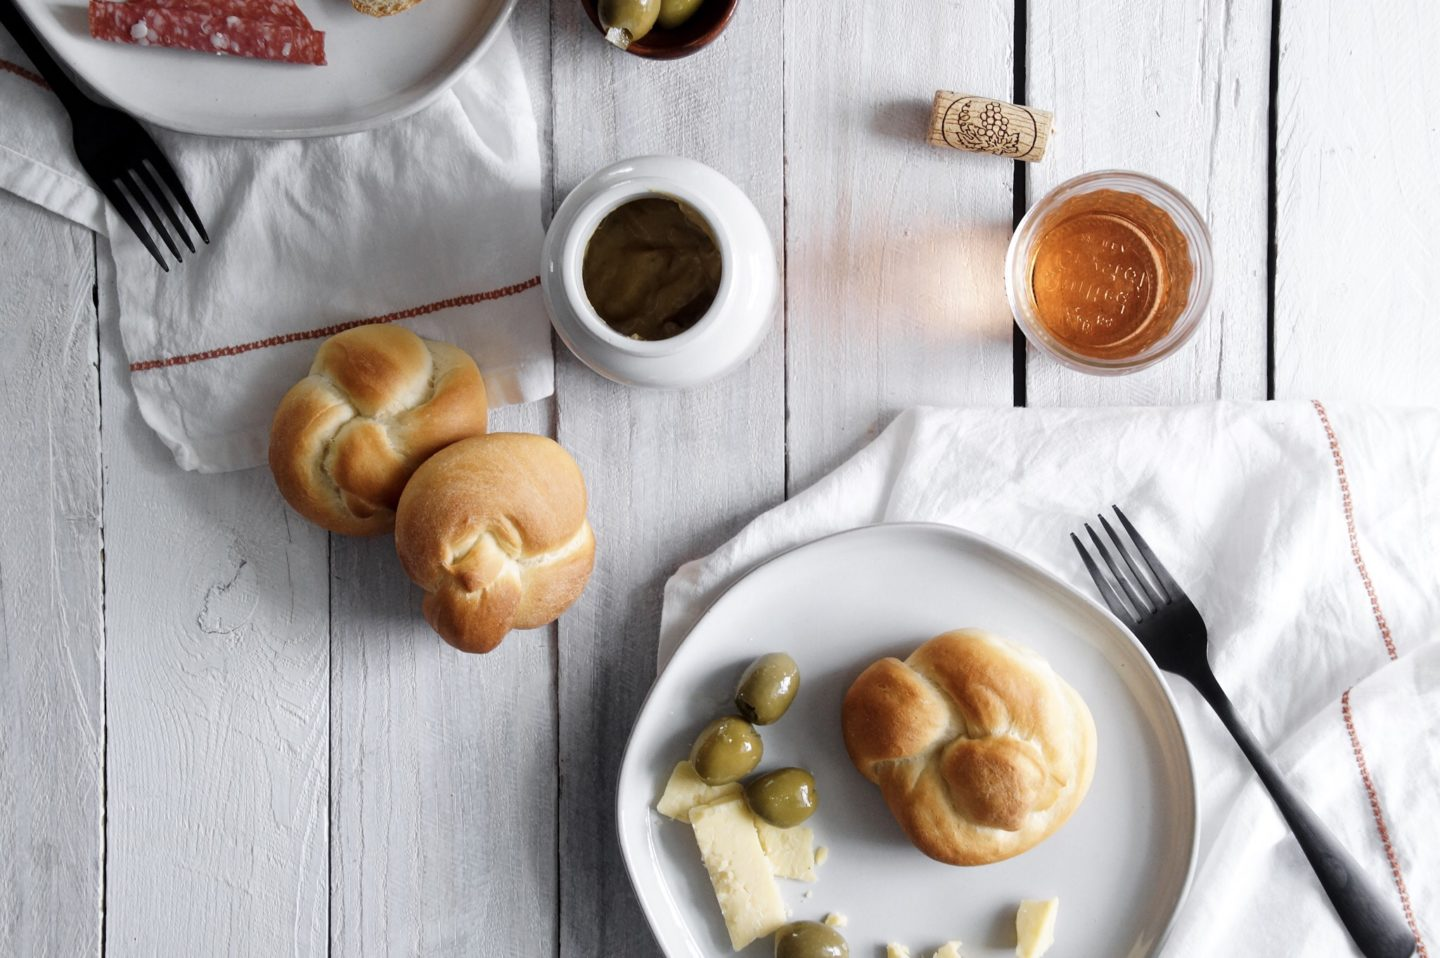 pair this recipe for milk buns with simple cheese and pickles or olives for a perfect no fuss lunch.